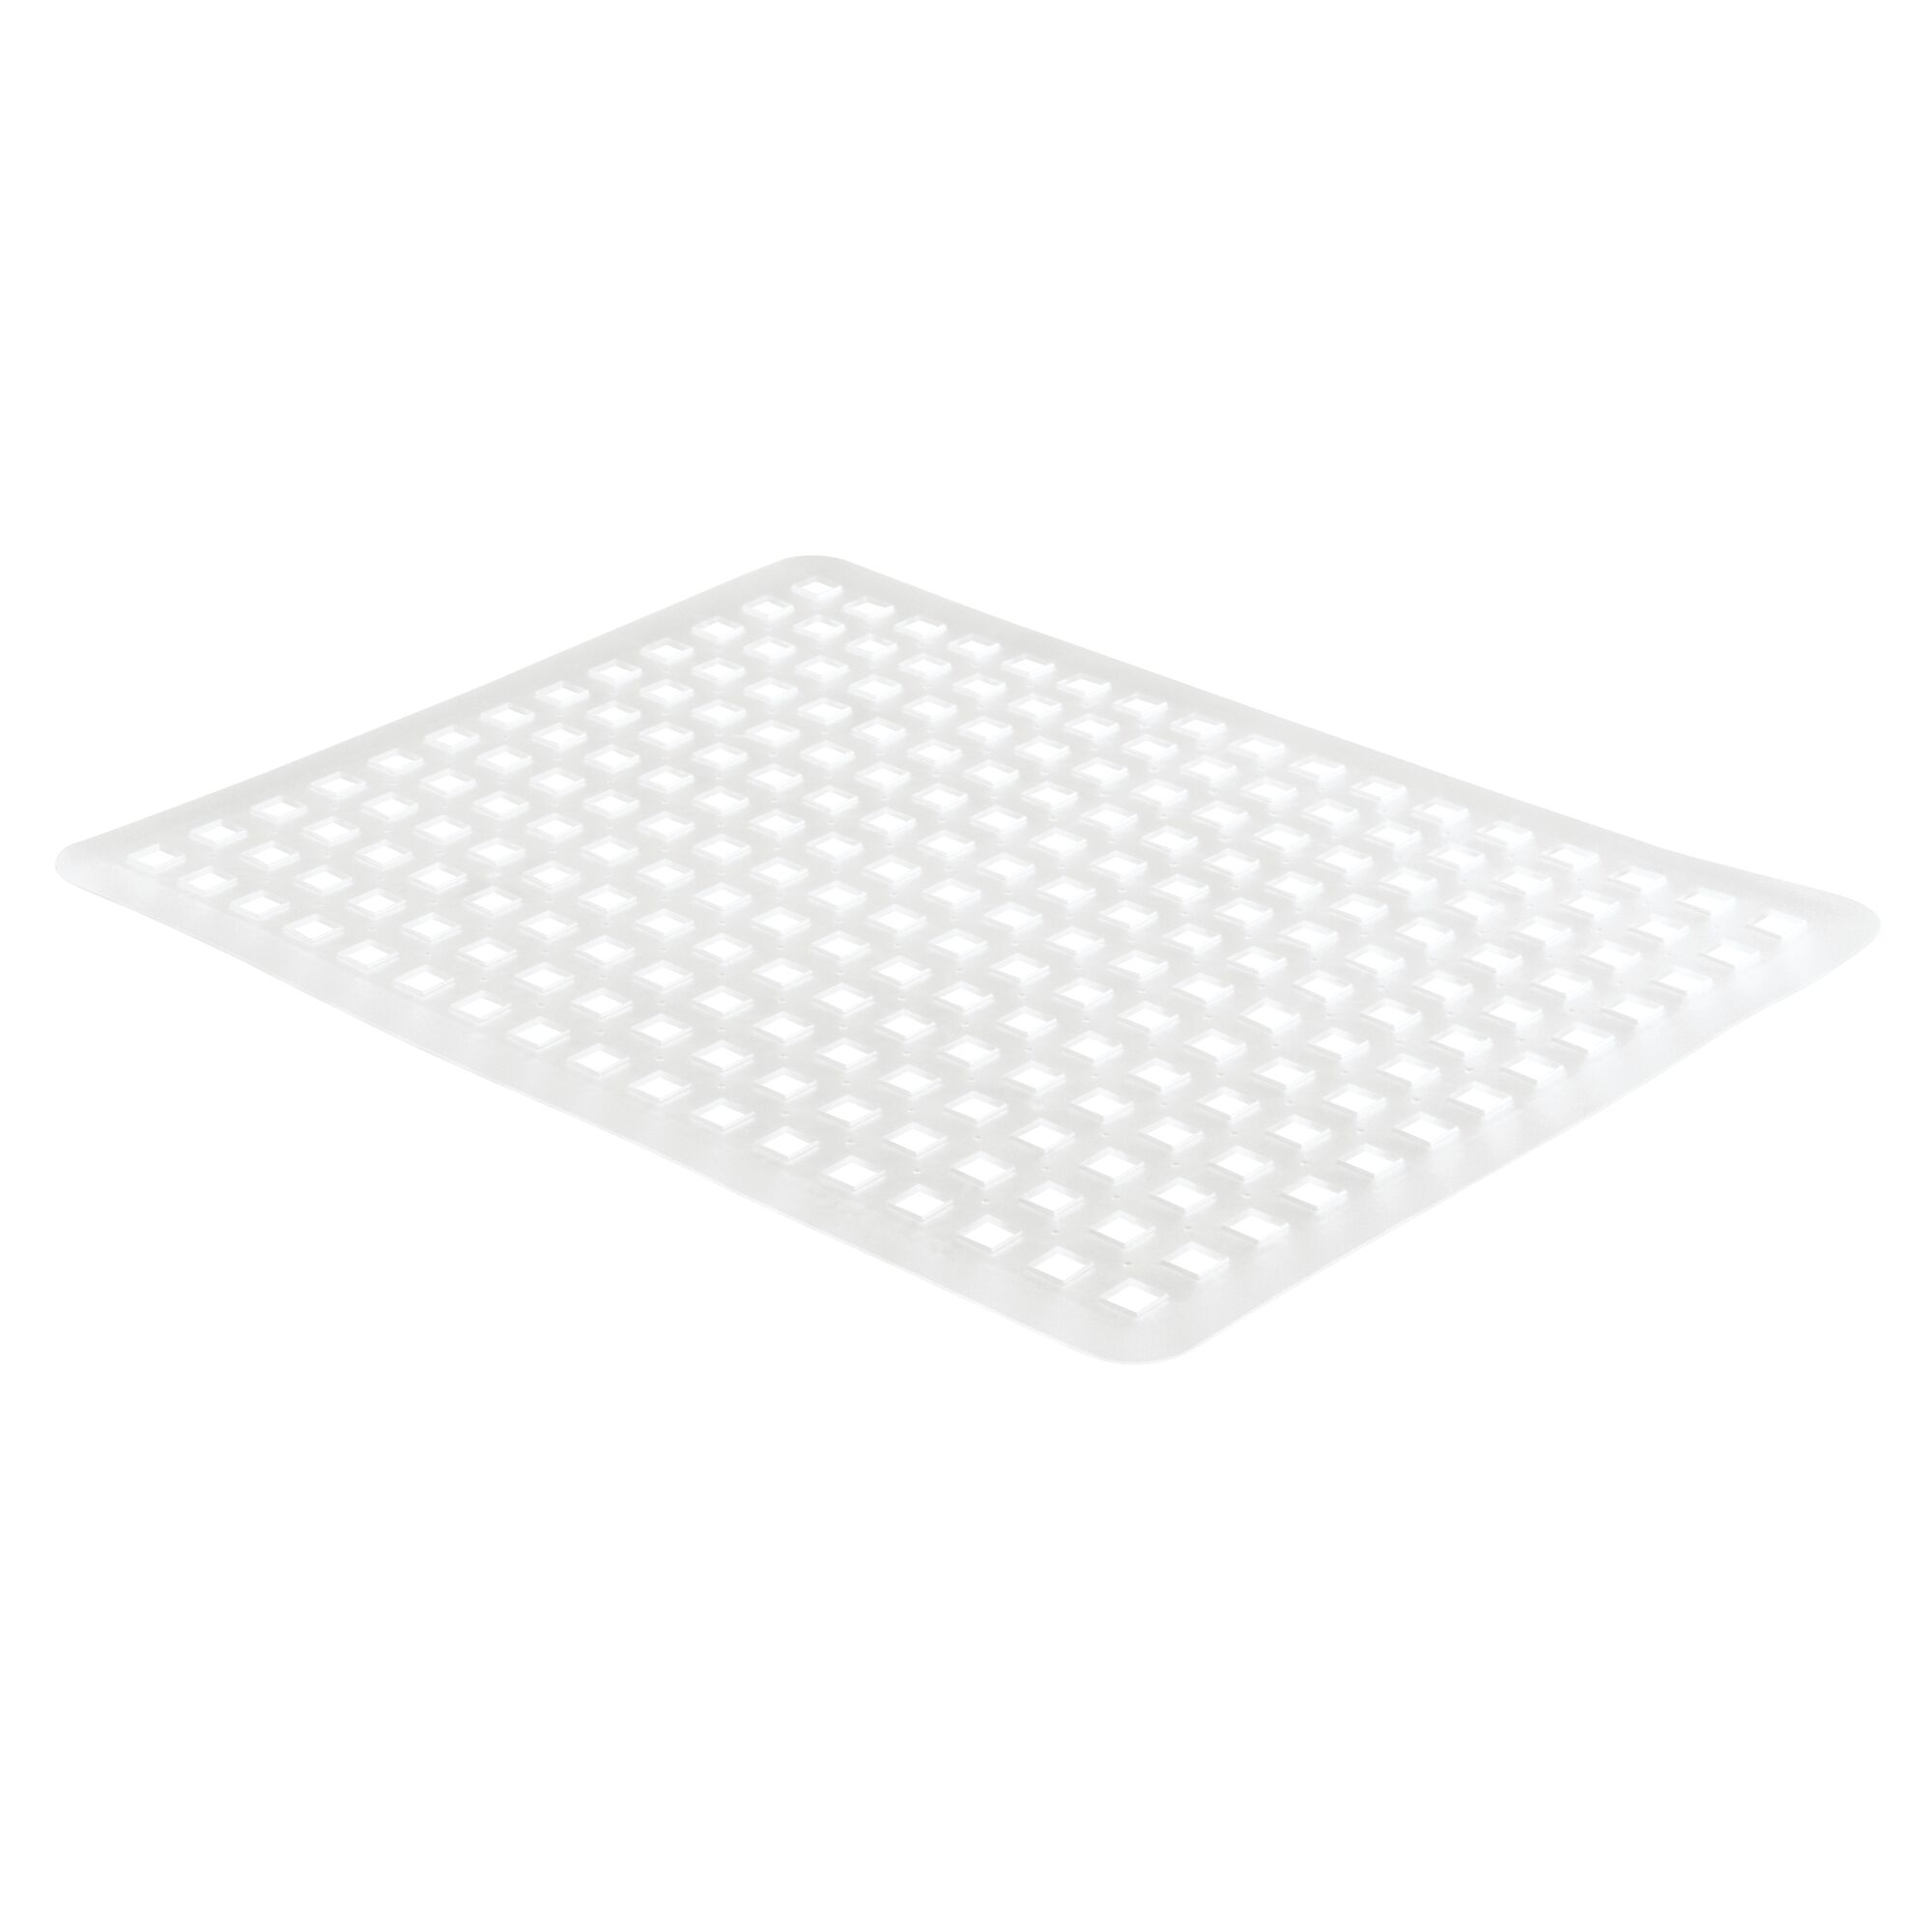 Brown Customisable Size Sink Cover Set Plastic Sink Mat Set to Protect Sinks and Dishes from Damage mDesign Set of 3 Sink Protector